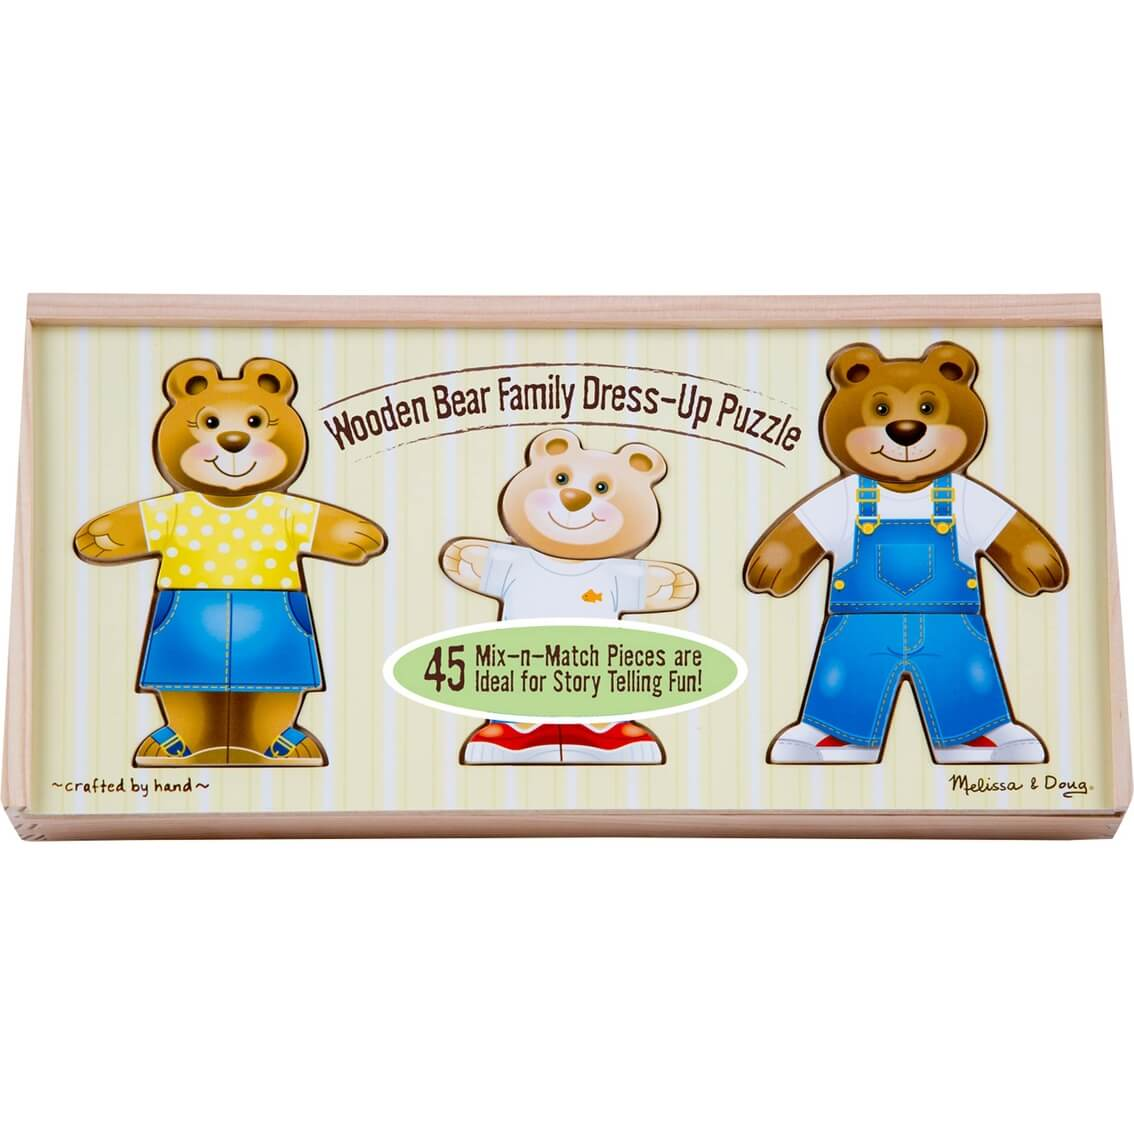 WOODEN BEAR FAMILY DRESS UP PUZZLE